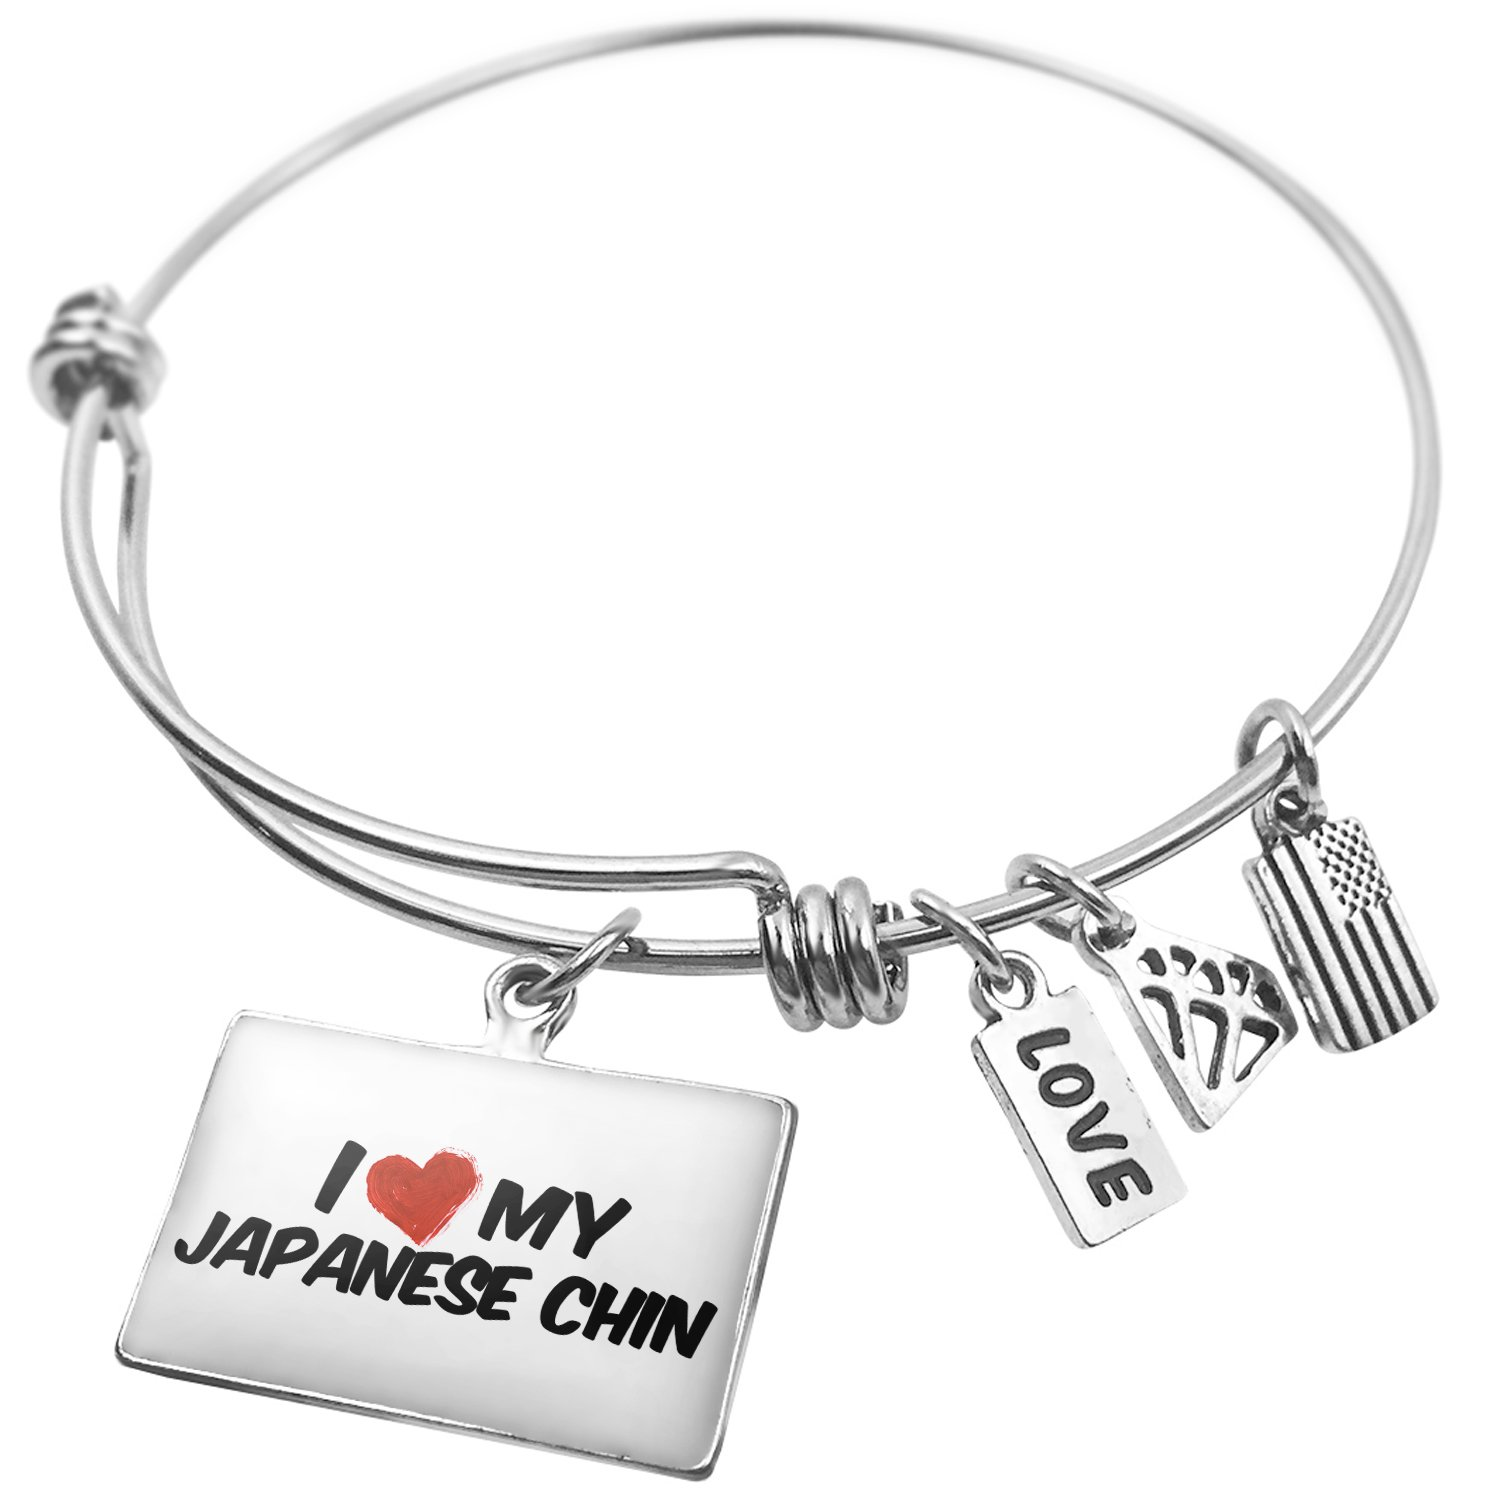 NEONBLOND Expandable Wire Bangle Bracelet I Love My Japanese Chin Dog from Japan